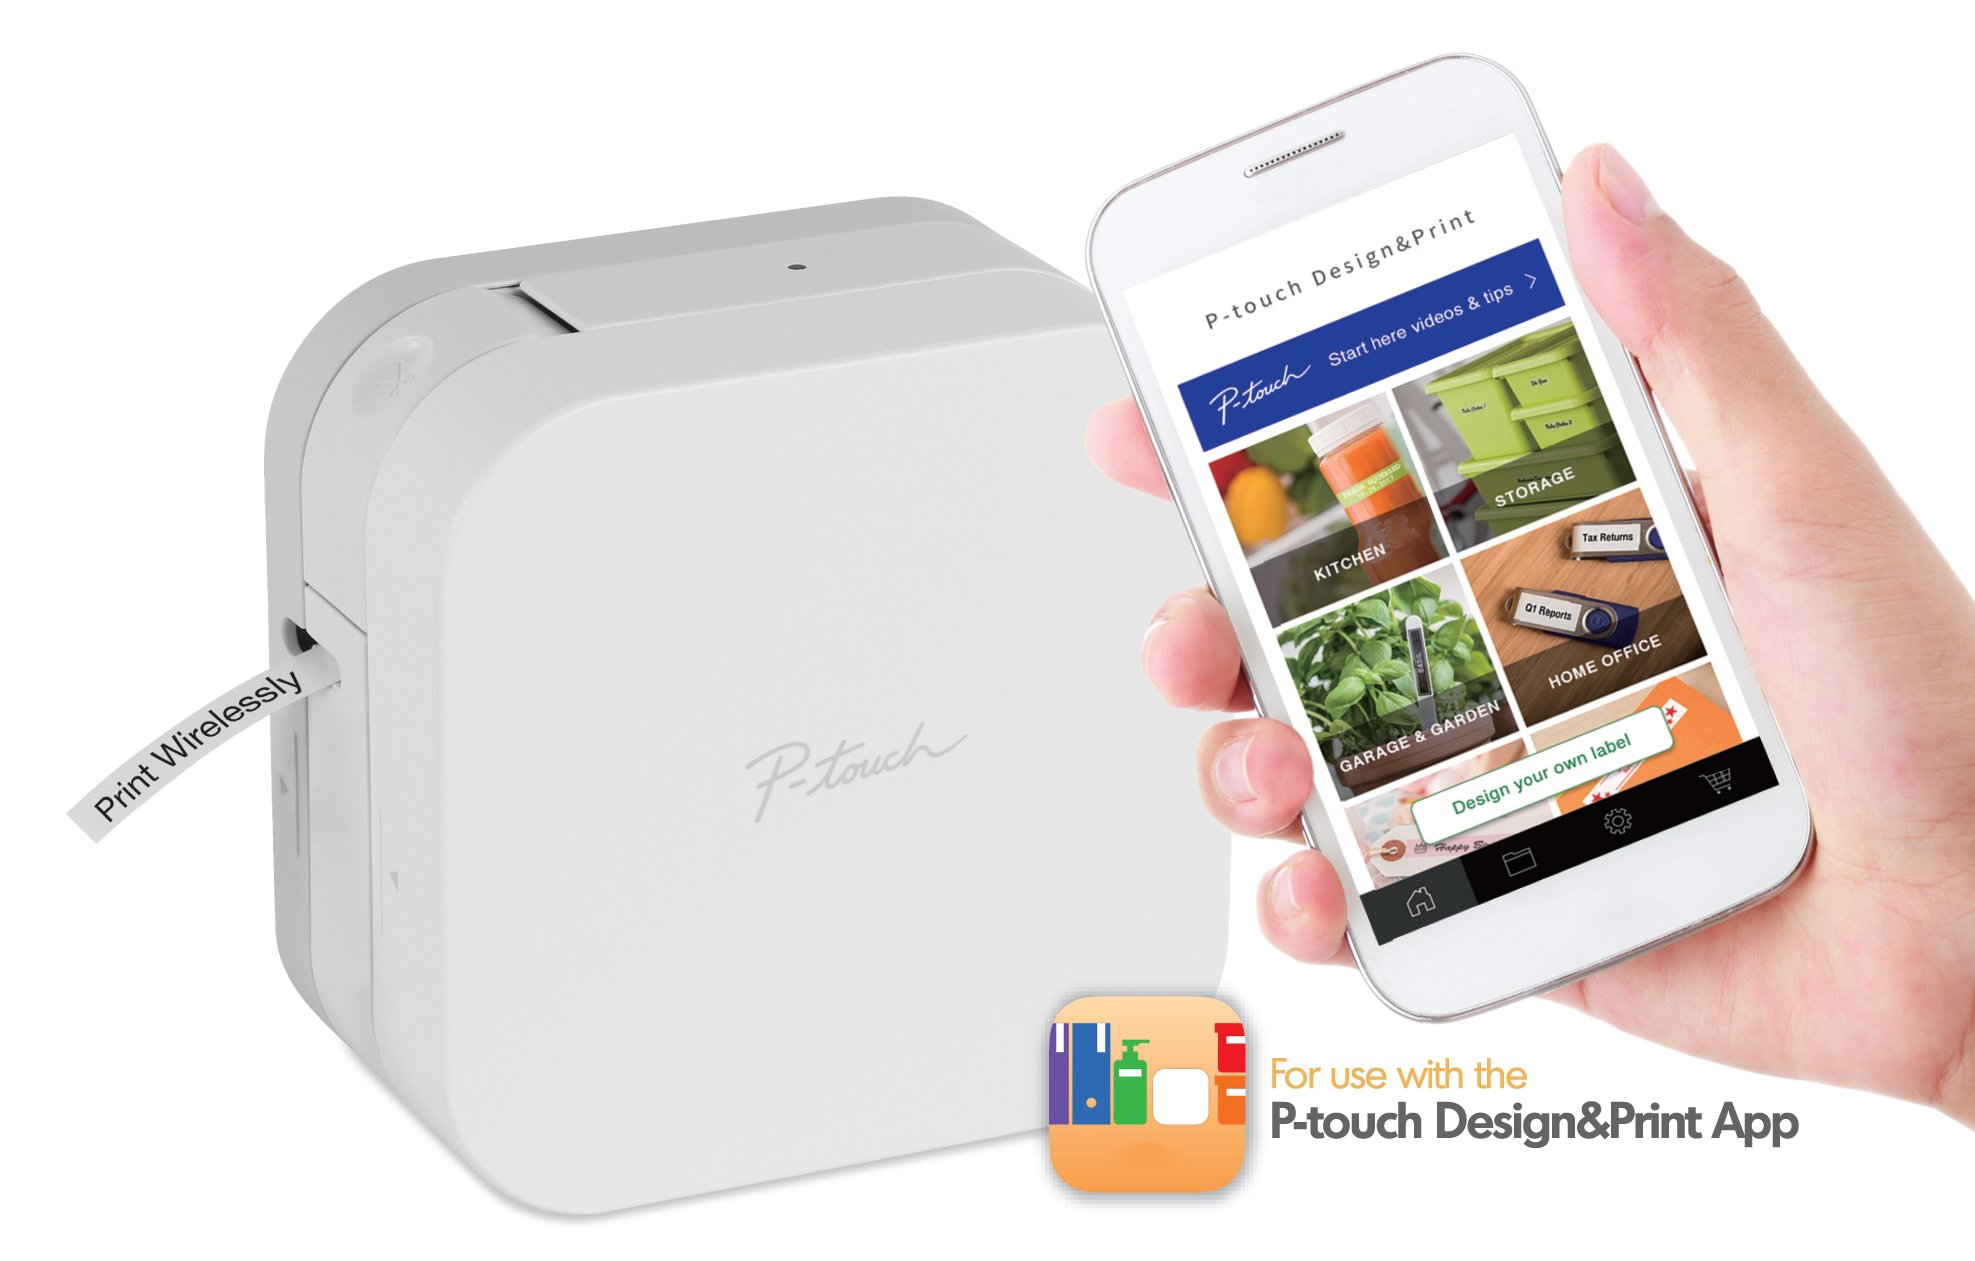 Brother P-Touch Cube Smartphone  Label Maker, Bluetooth Wireless Technology, Multiple Templates Available for Apple & Android Compatible - White by Brother